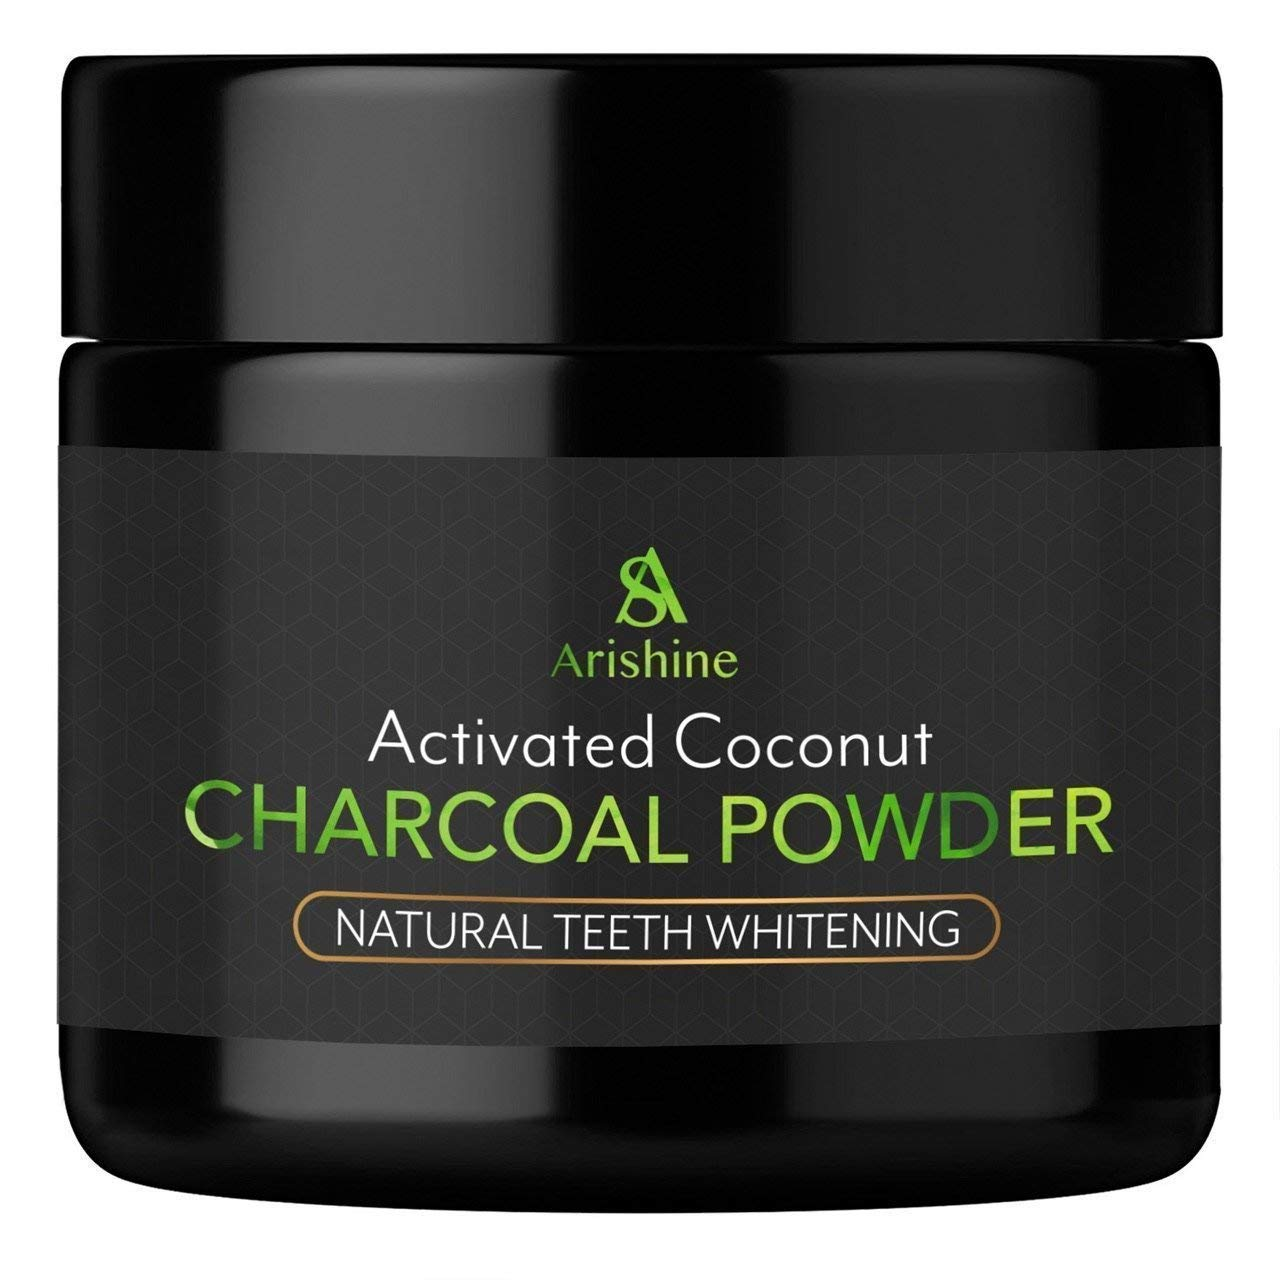 Teeth Whitening Charcoal Powder Natural - Activated Charcoal Teeth Whitening Kit – Teeth Whitener 30g product image